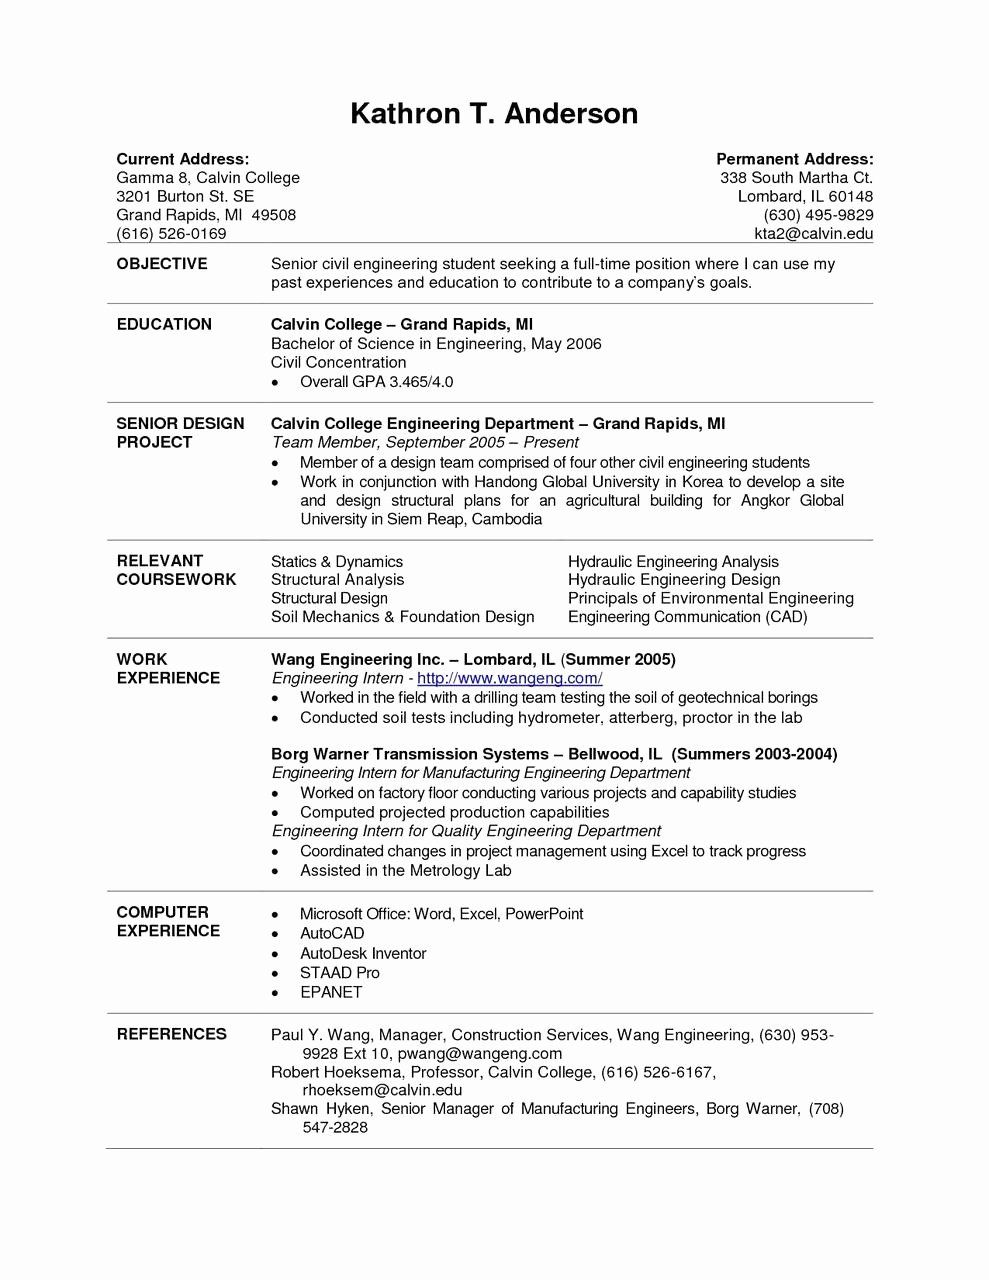 Managed Services Business Plan Template In 2020 Job Resume